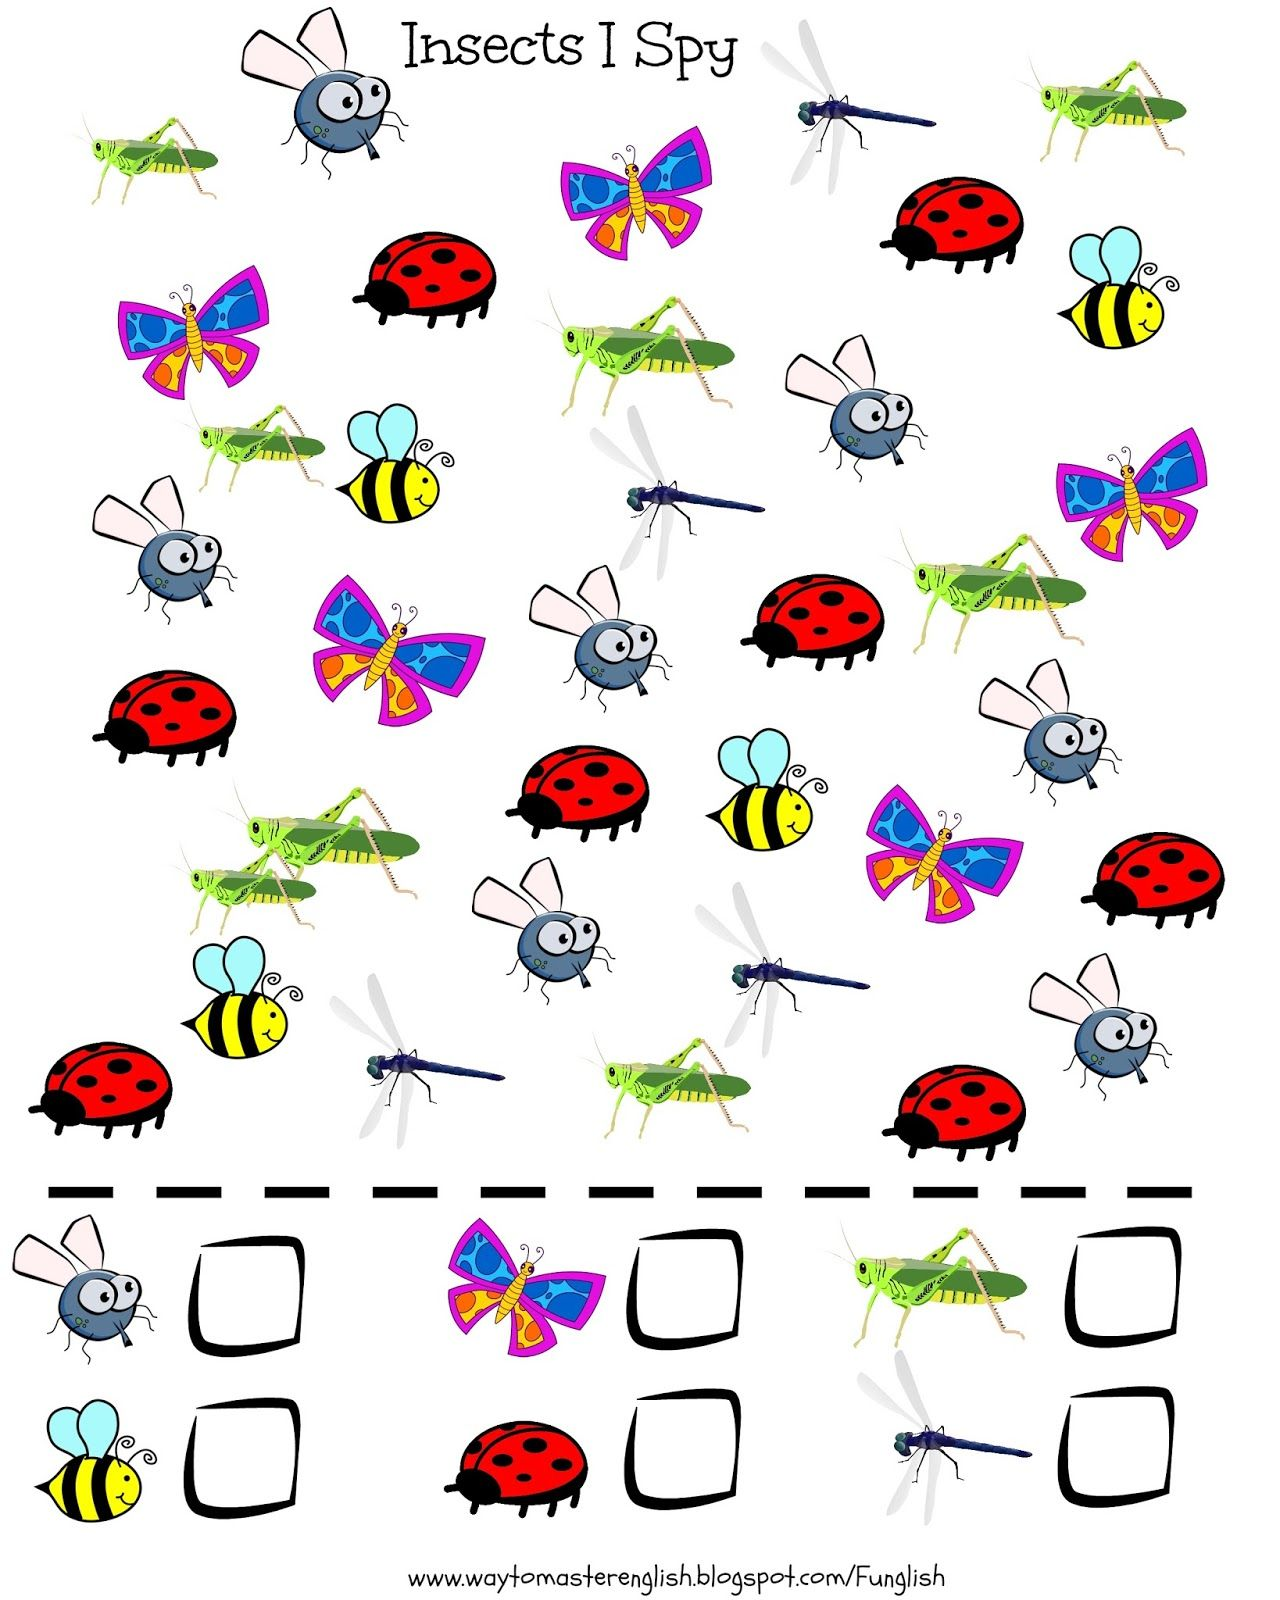 Insects Vocabulary Animals I Spy Kids Young Learners